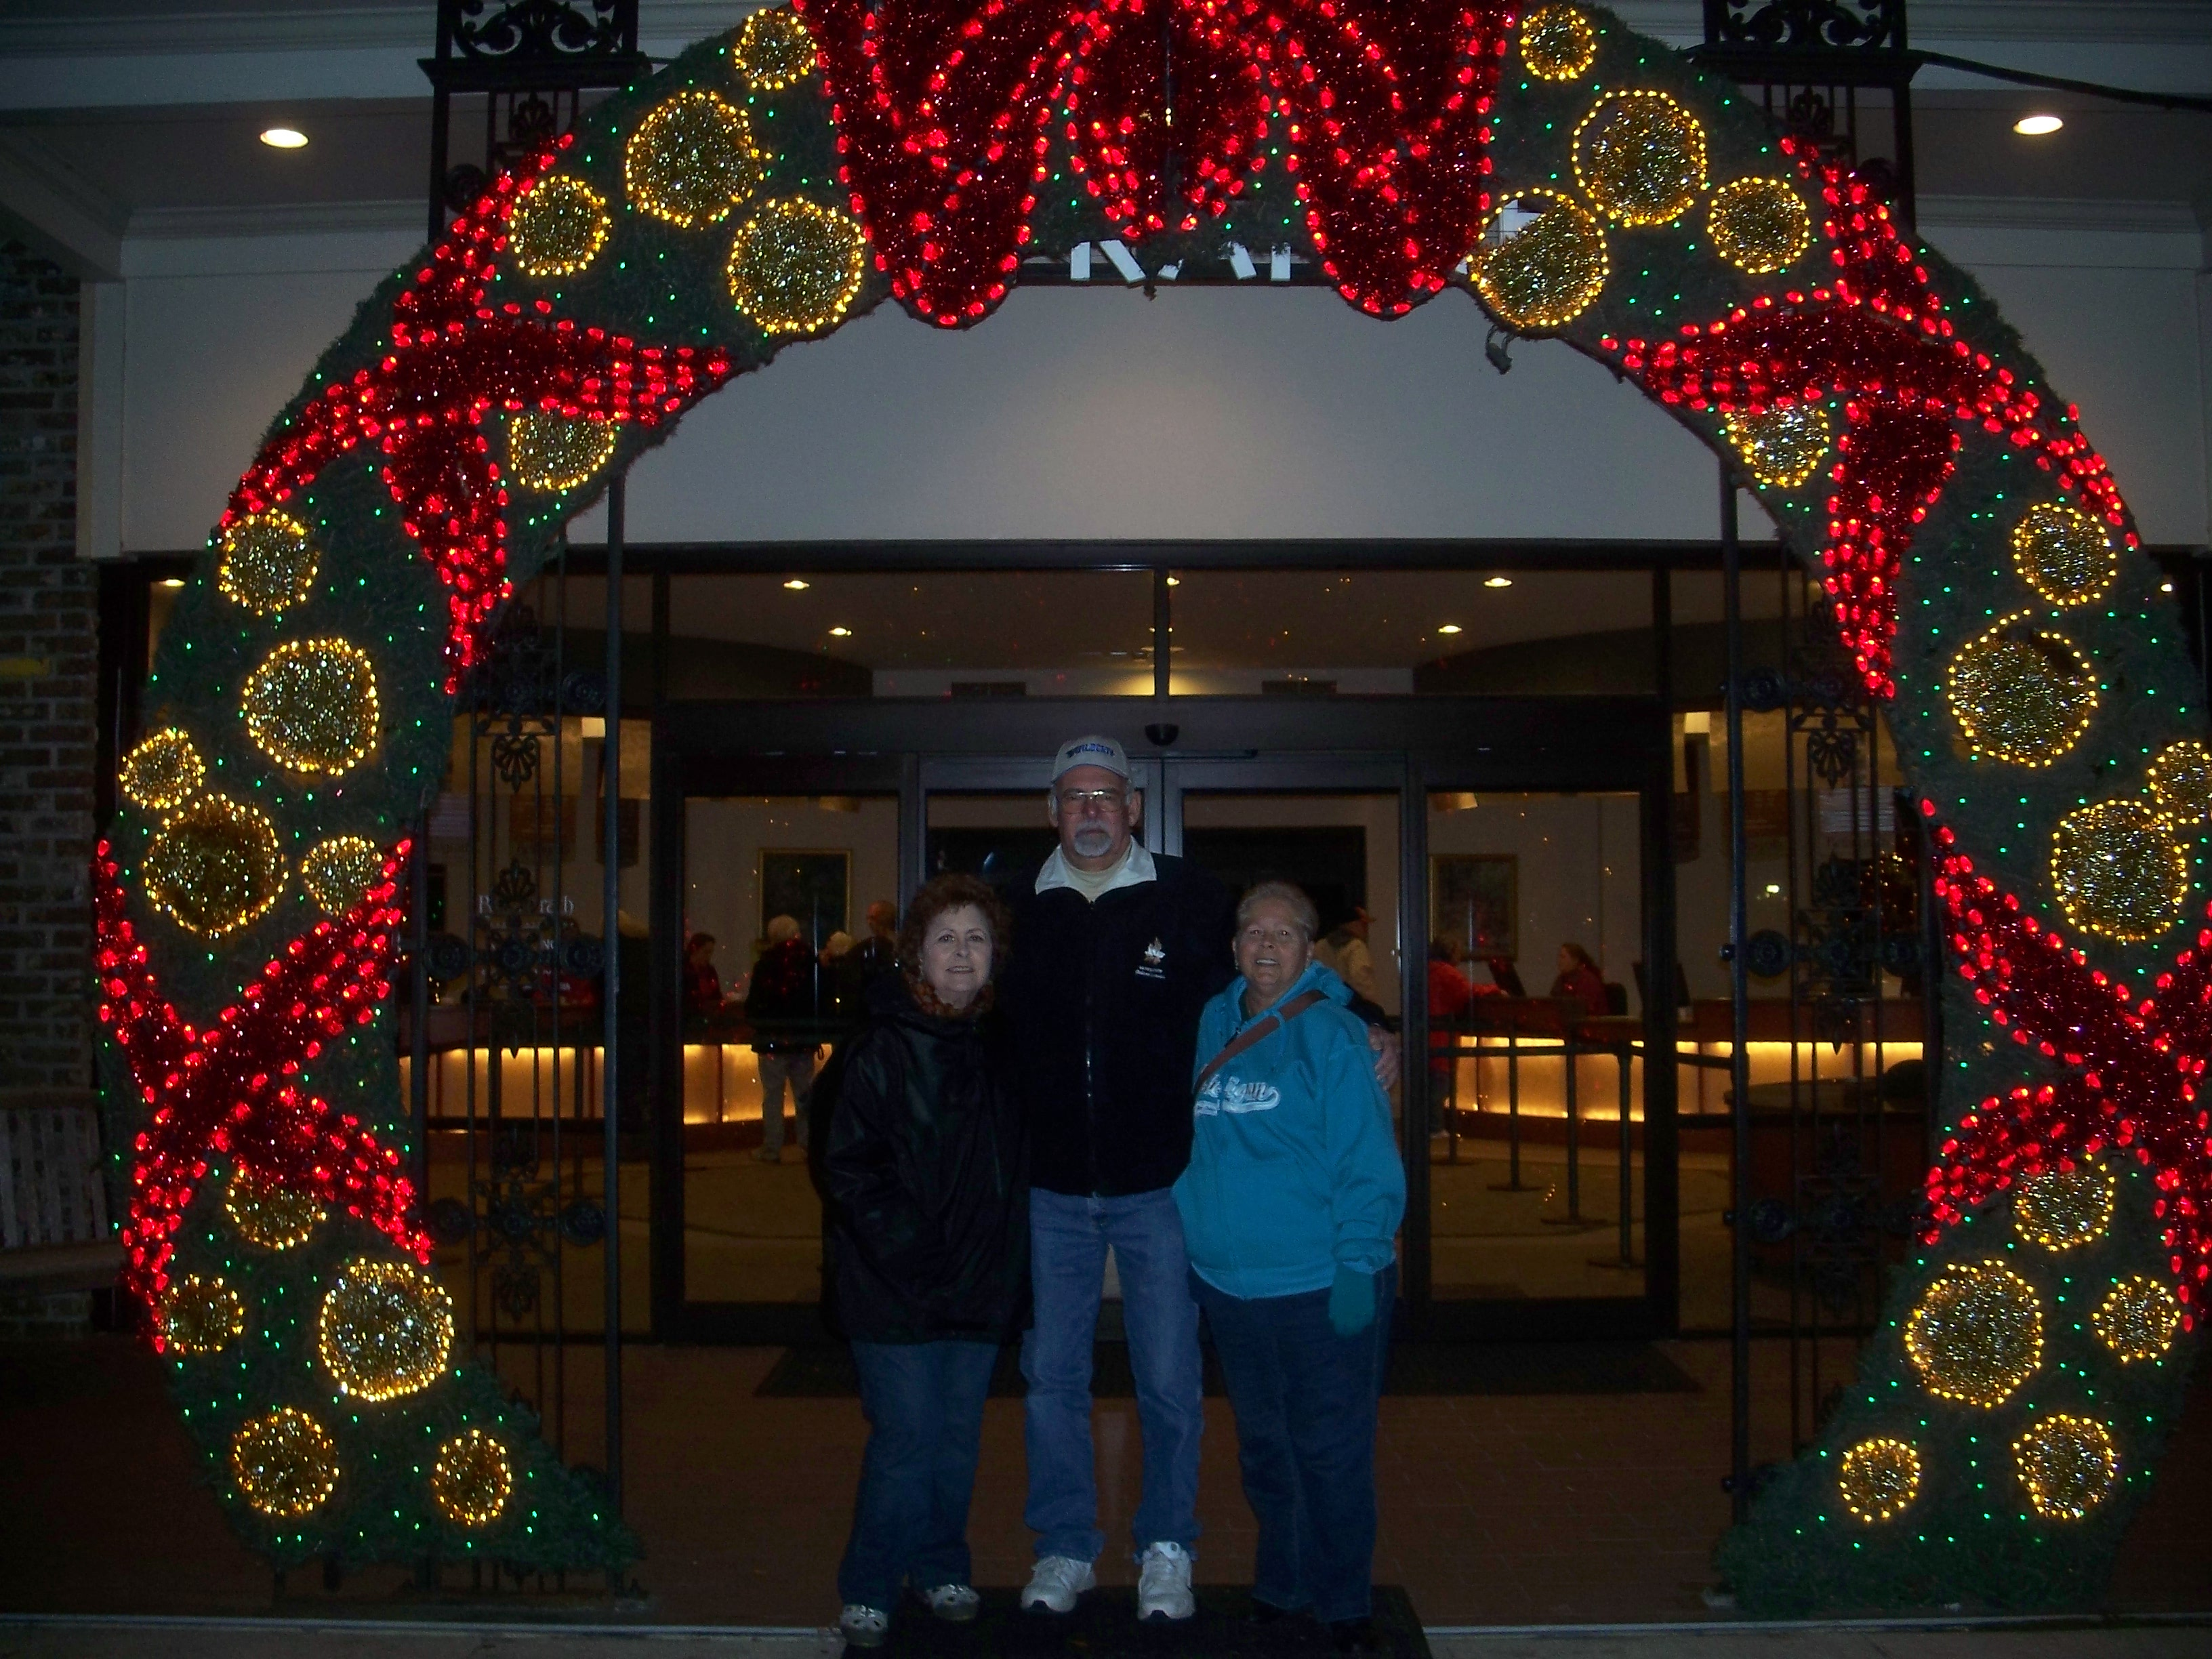 Entrance To The Bellingrath Gardens Christmas Traveling Gods Country Darlene George Paterson